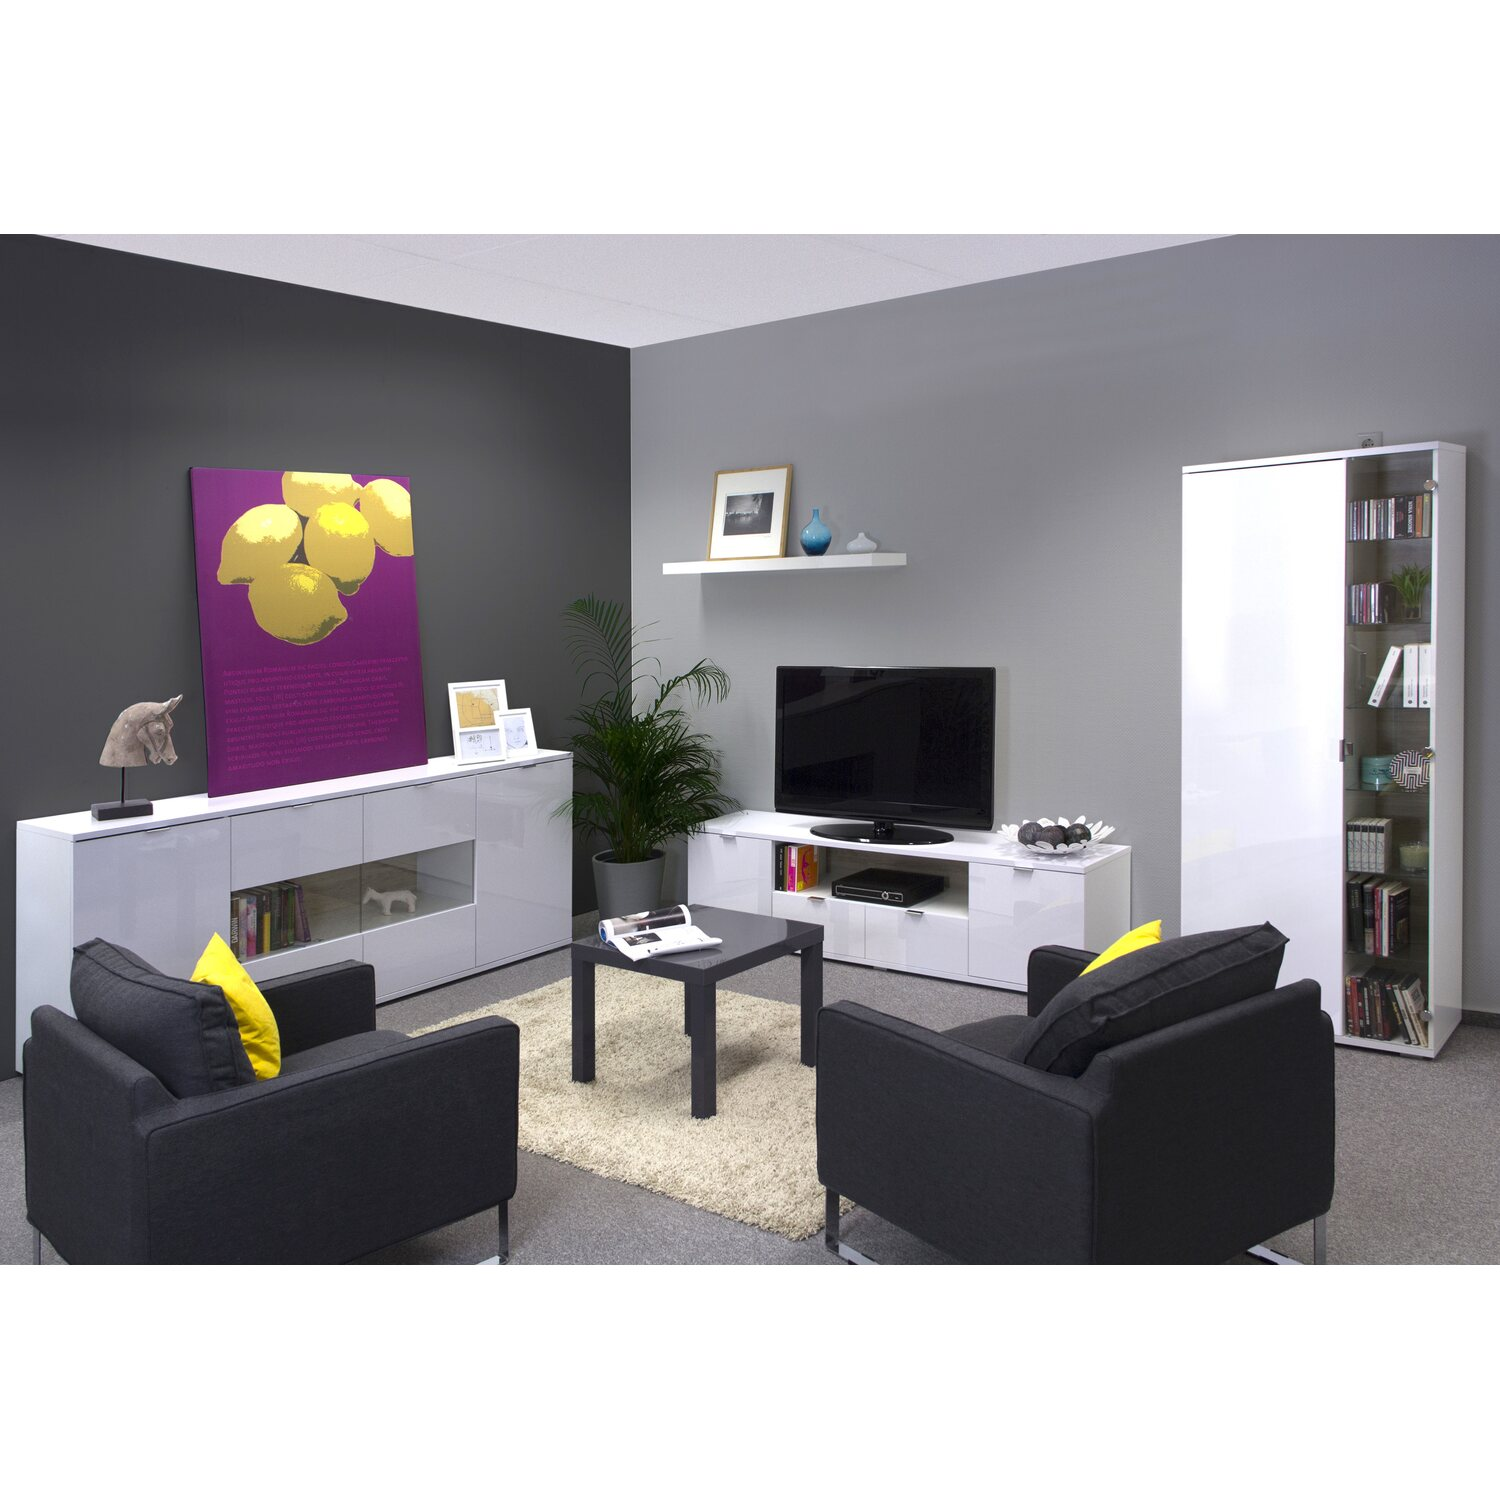 hochwertige wohnzimmer vitrine mit glast r in brilliant. Black Bedroom Furniture Sets. Home Design Ideas